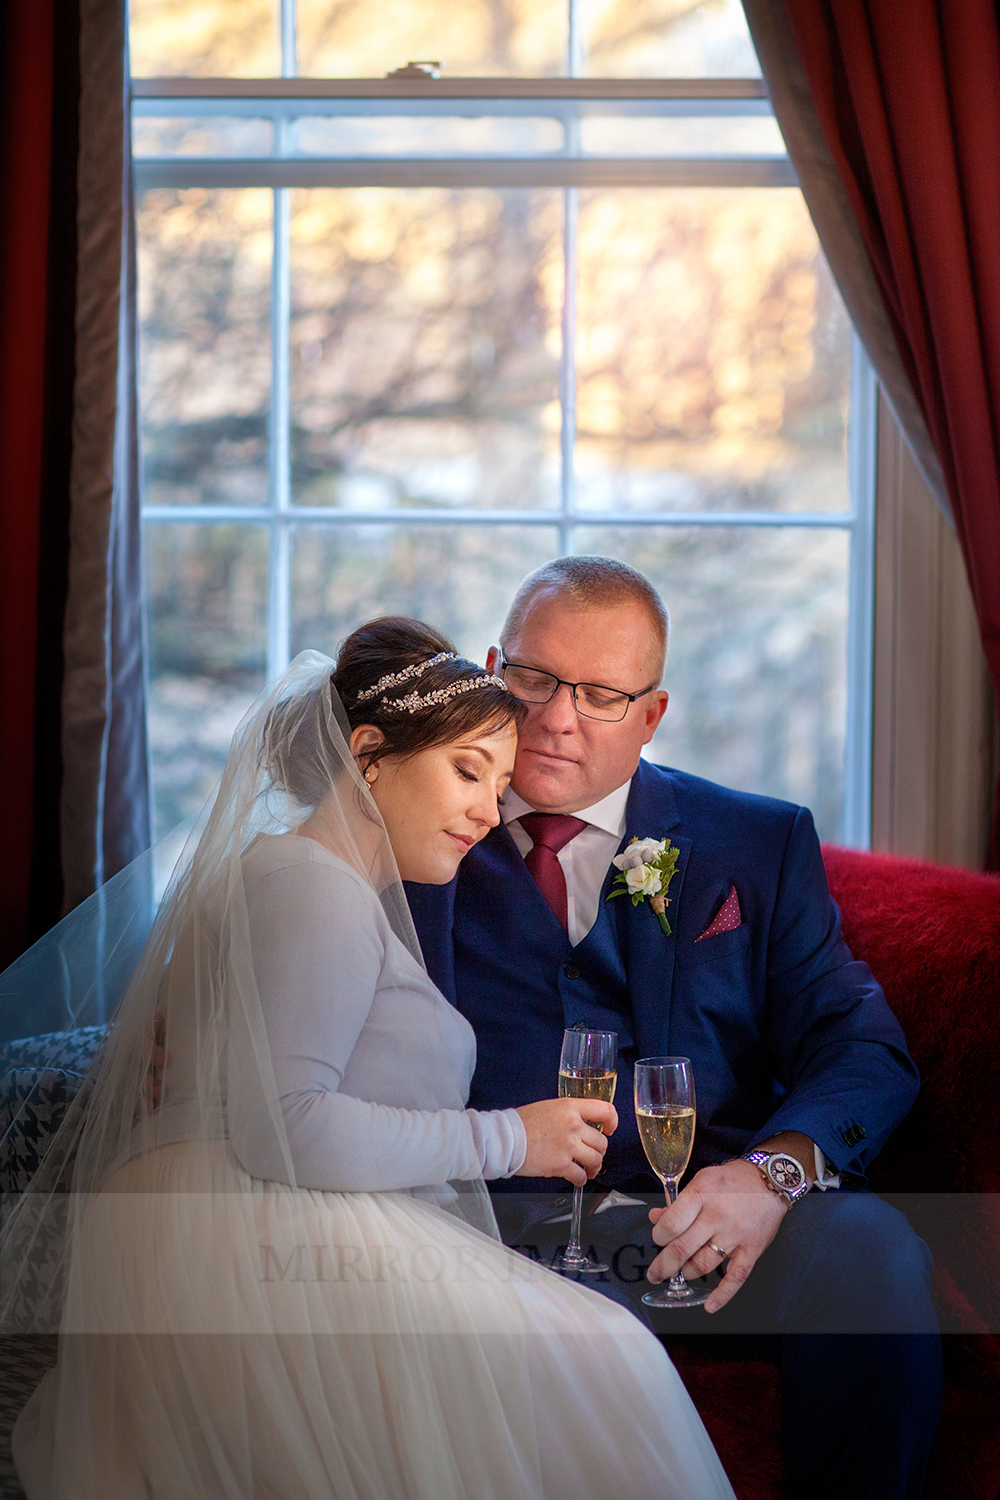 nottingham wedding photographers 45.jpg